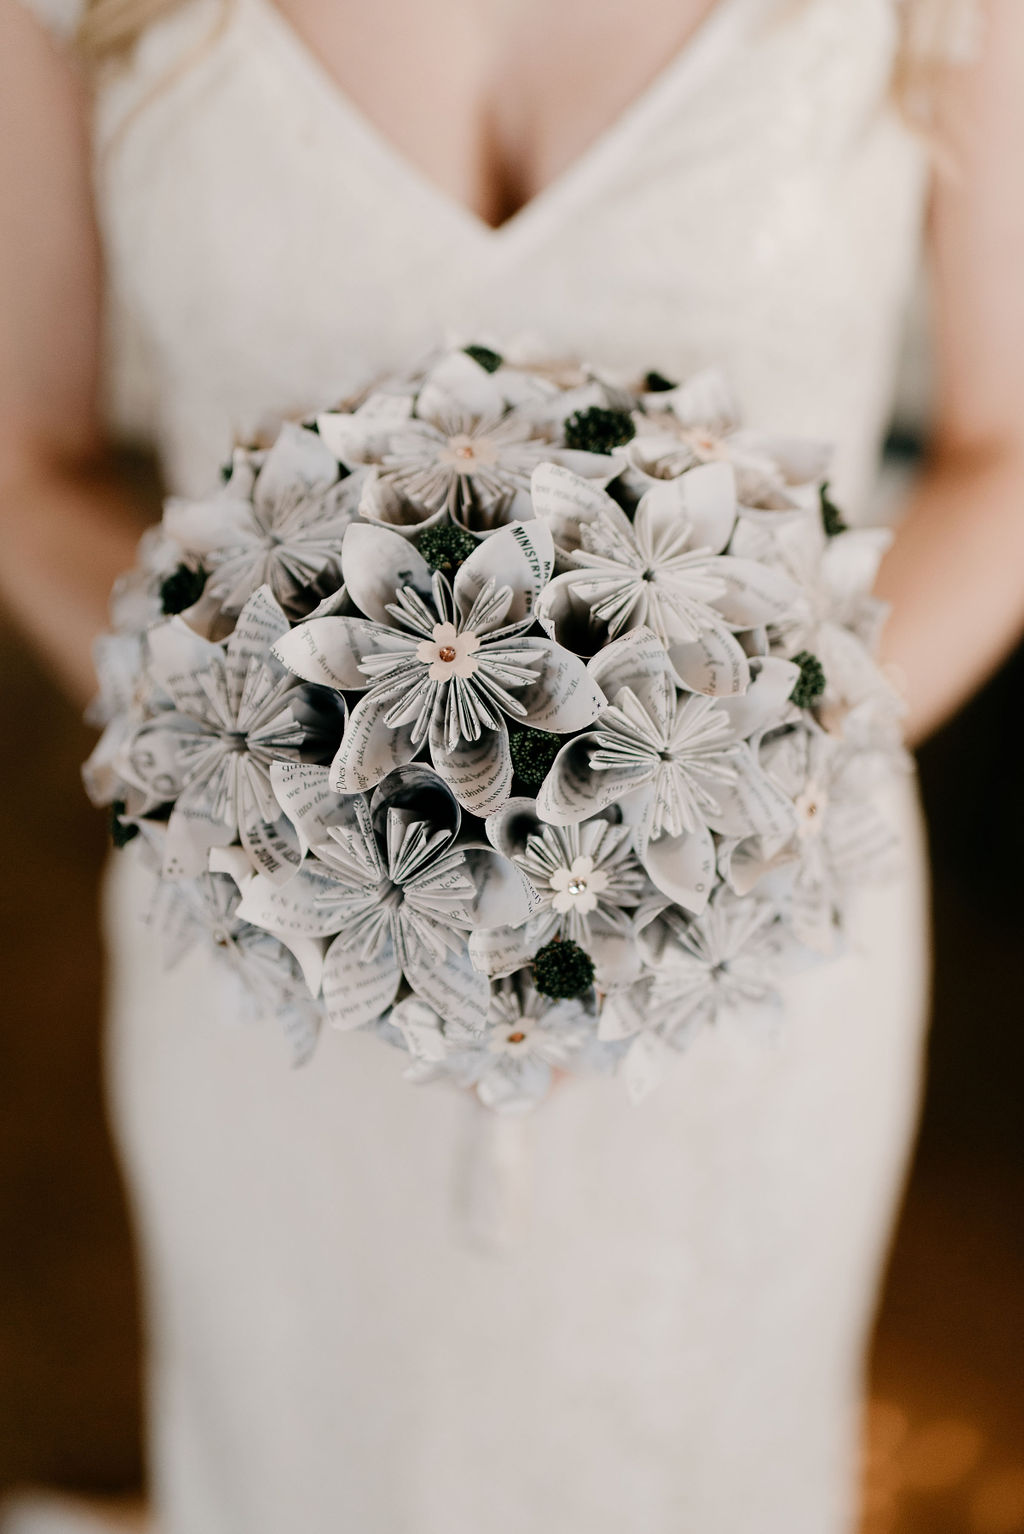 Awesome paper bridal bouquet created from the pages of the Harry Potter Books